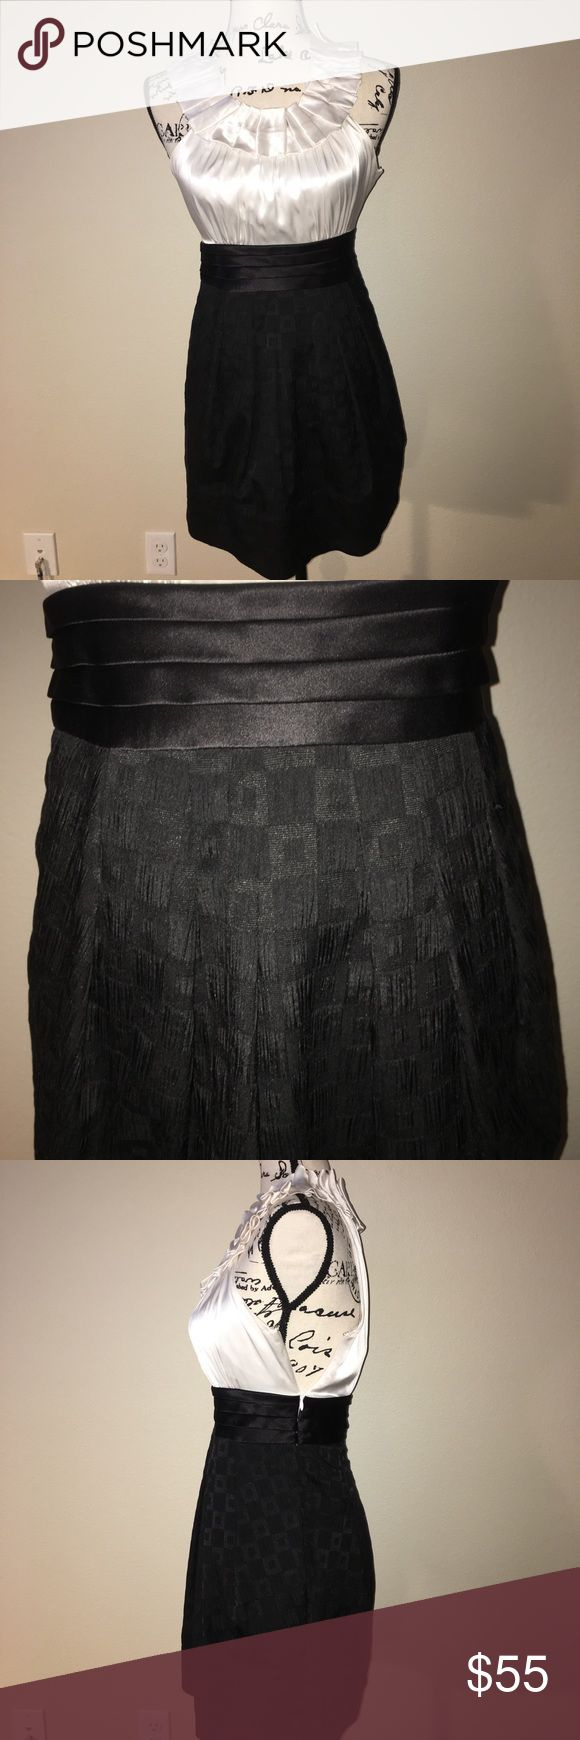 Bcbg black and white cocktail dress 2P Great condition bcbg black and white cocktail dress in size 2P. White satin and detailed collar at the top with black at the bottom. Two small marks on the back of the collar but they are hardly noticeable. Has pockets and side zipper. BCBGMaxAzria Dresses Mini